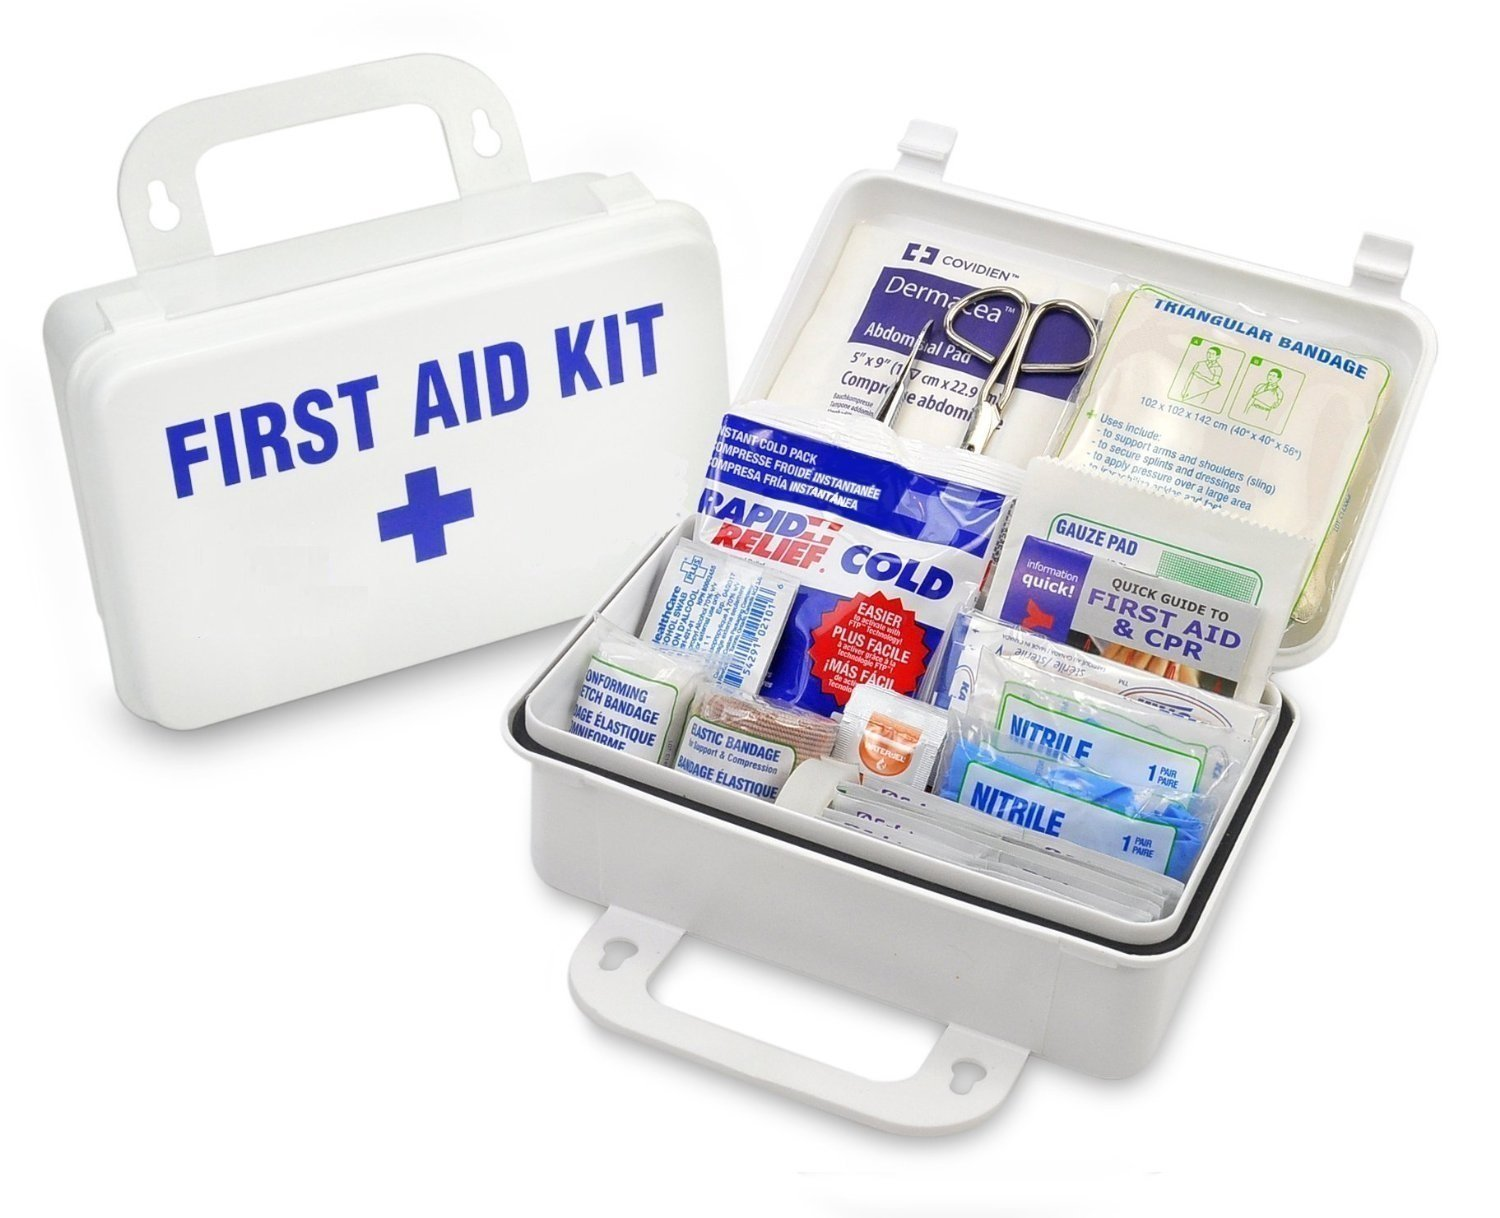 First Aid All-purpose Kit, Waterproof Light Weight, Wall-Mountable Case – Essential Medical Supplies: For Car, Hiking, Home, Etc, Instruction guide, Osha And Ansi Compliance In (Kit for 25 People)